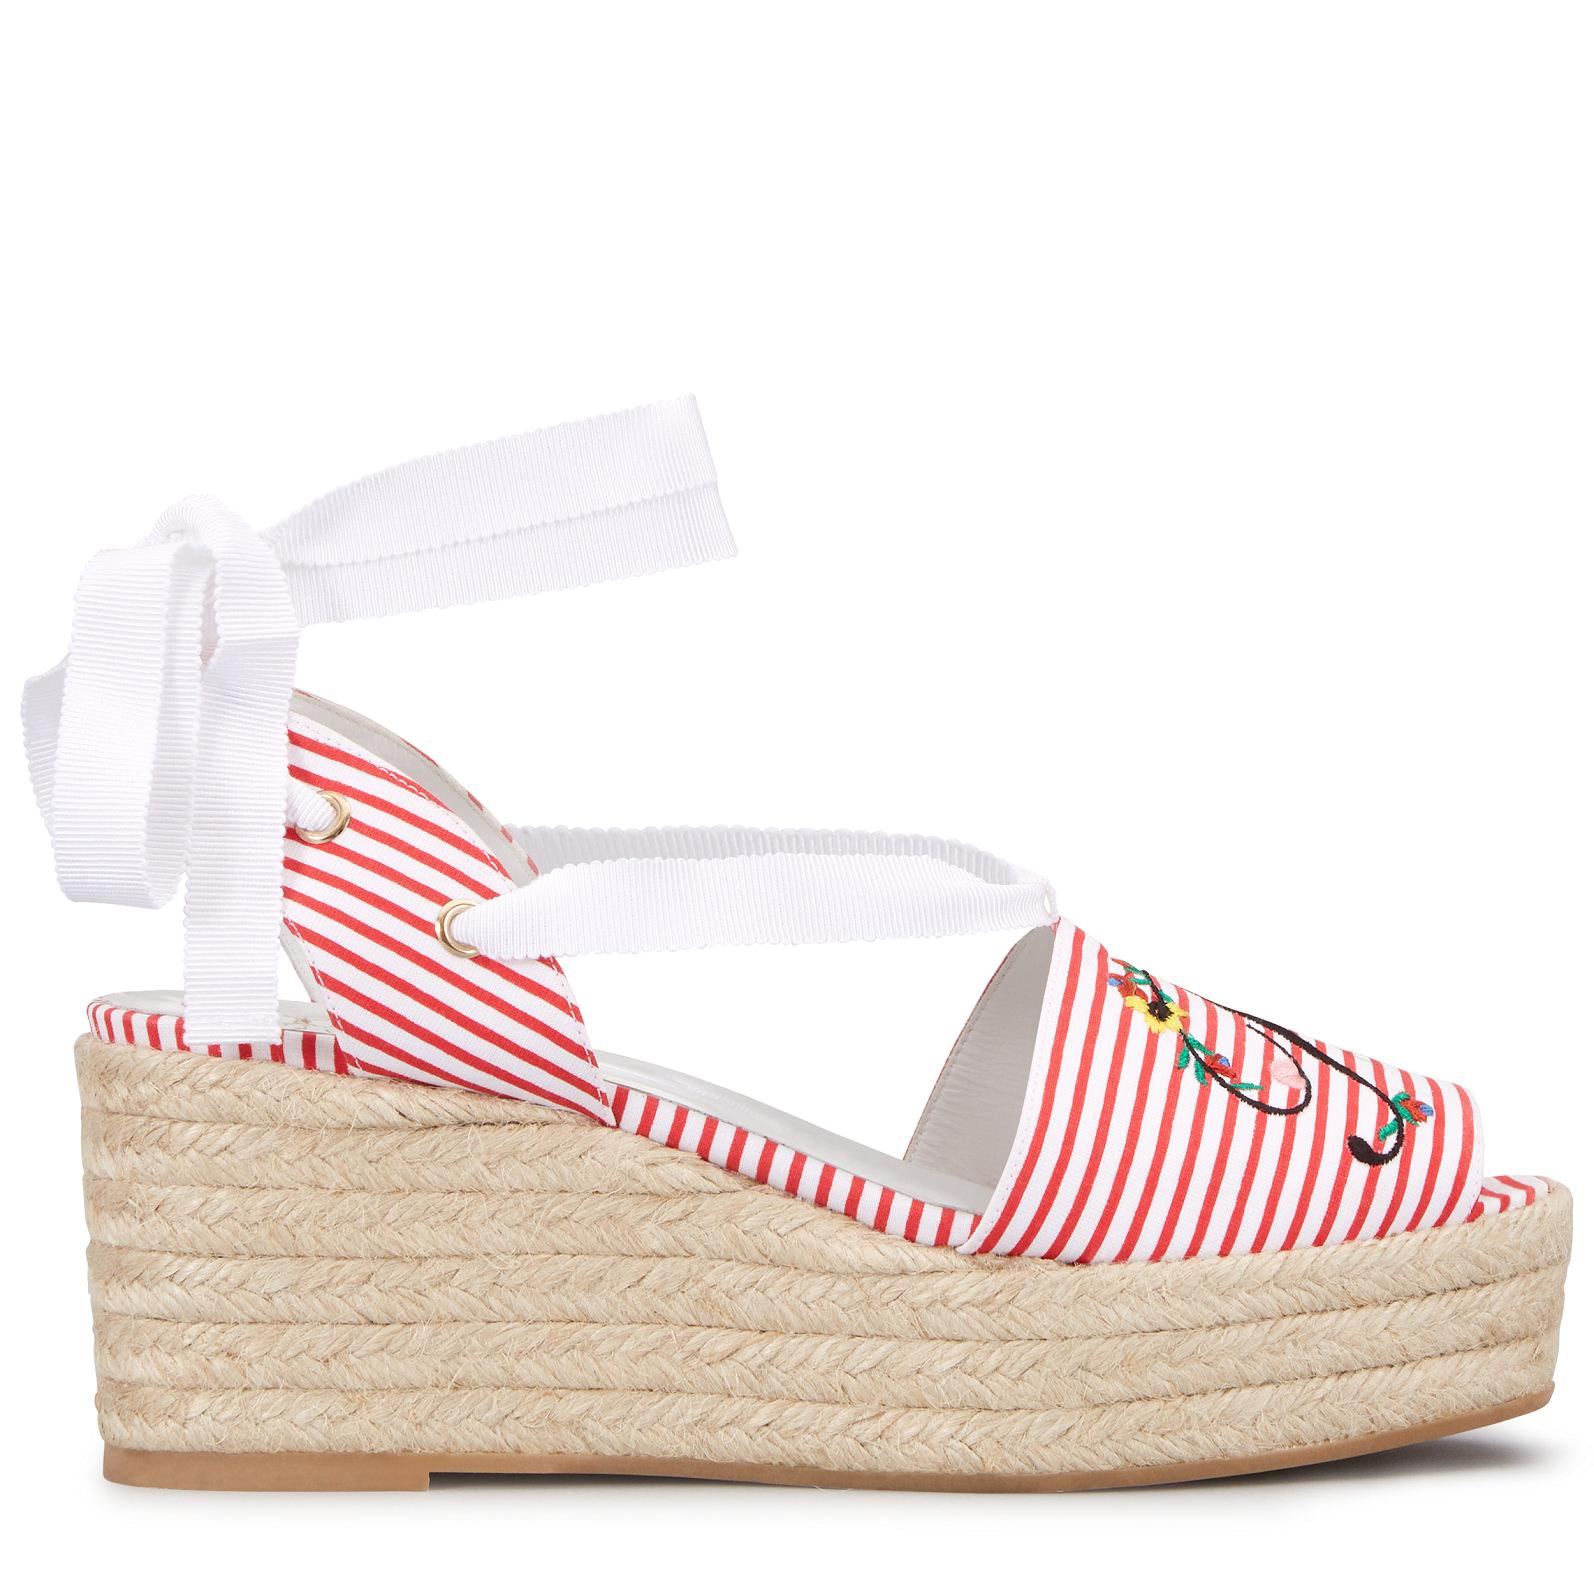 Roger Vivier Espadrilles Lace Up Blooming RV